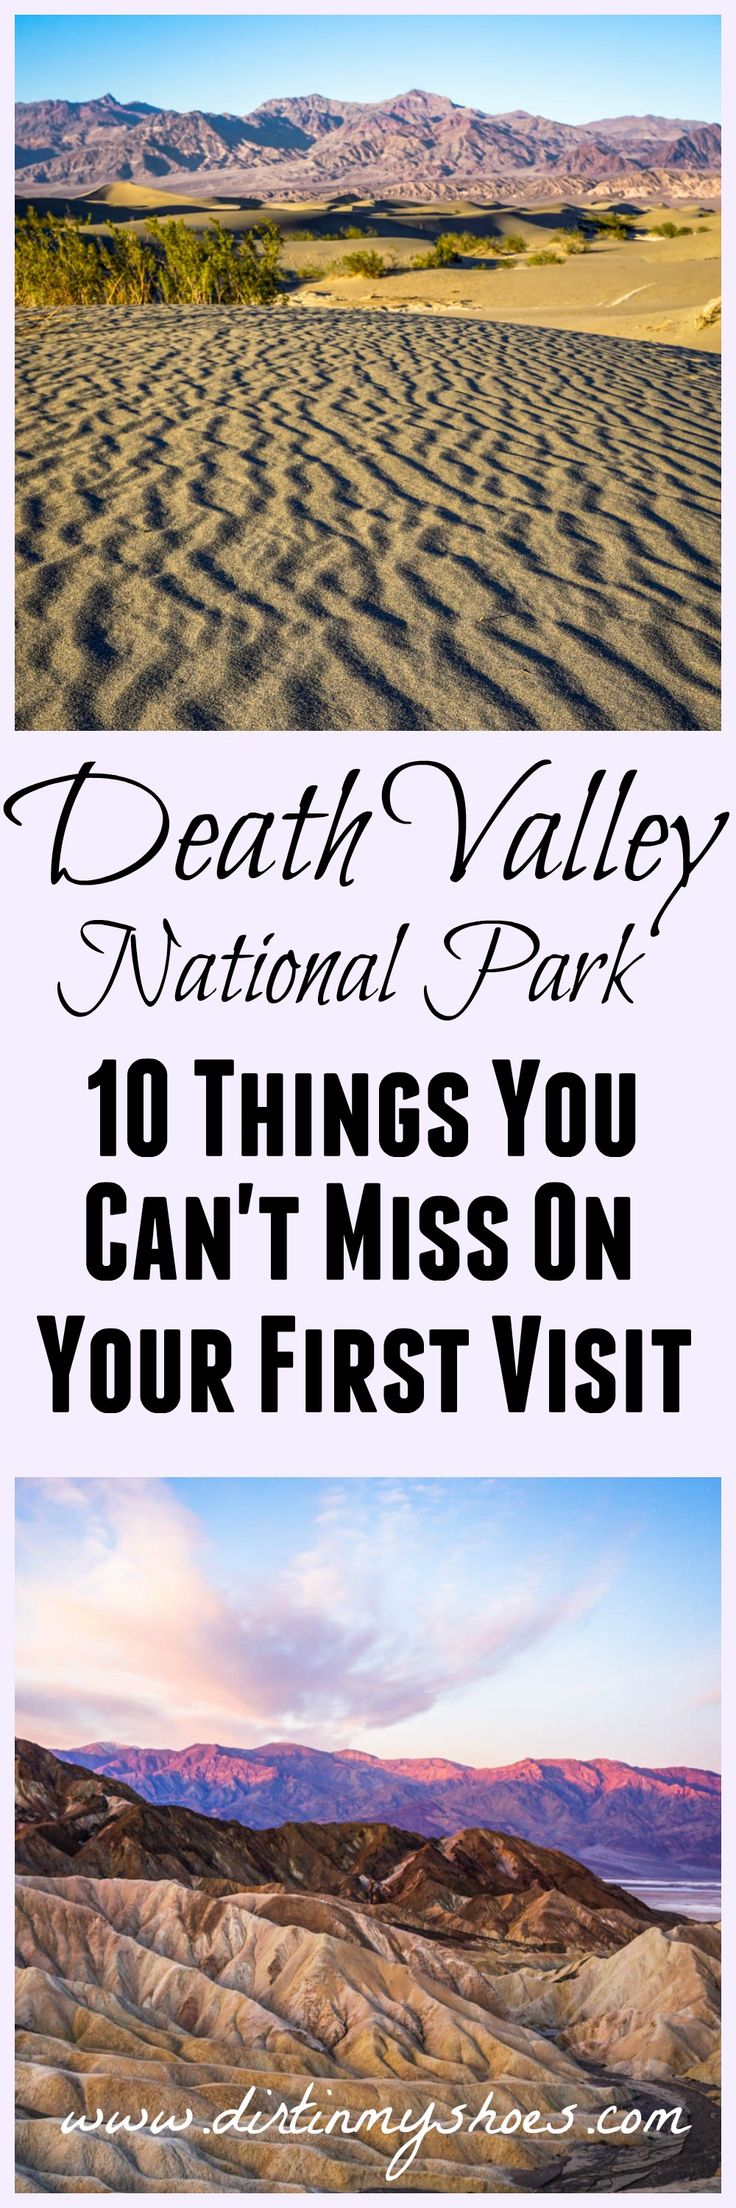 Don't miss these 10 hikes, viewpoints, and activities on your first visit to Death Valley National Park -- written by a former park ranger!